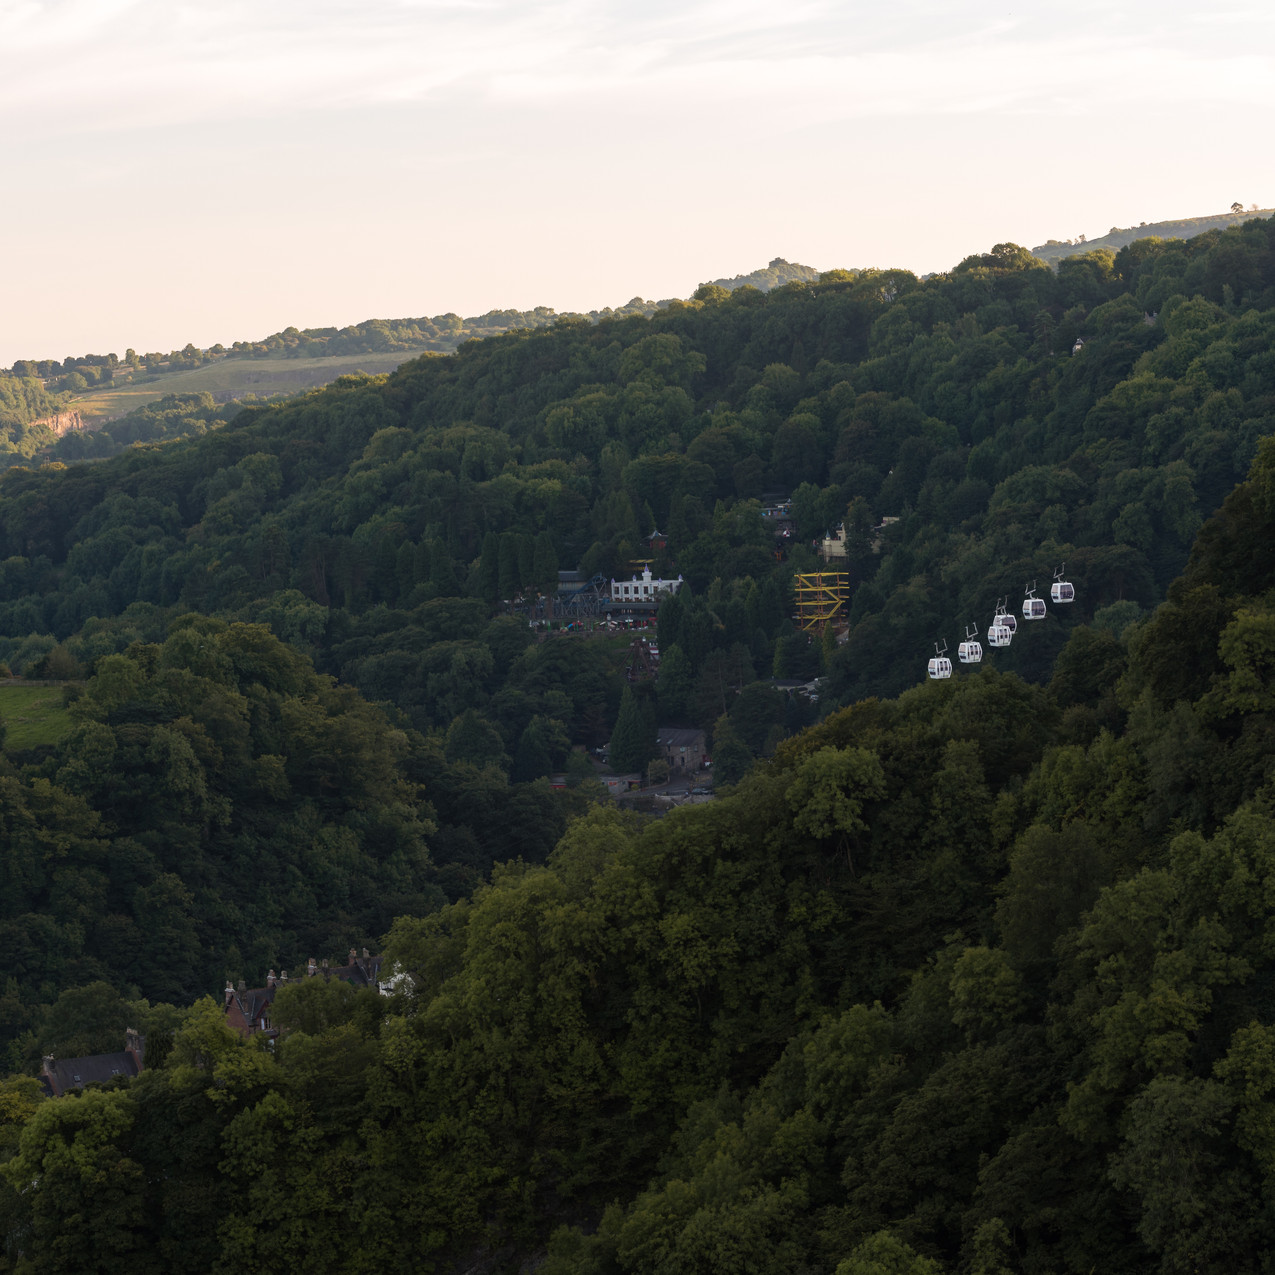 Cable cars at High Tor